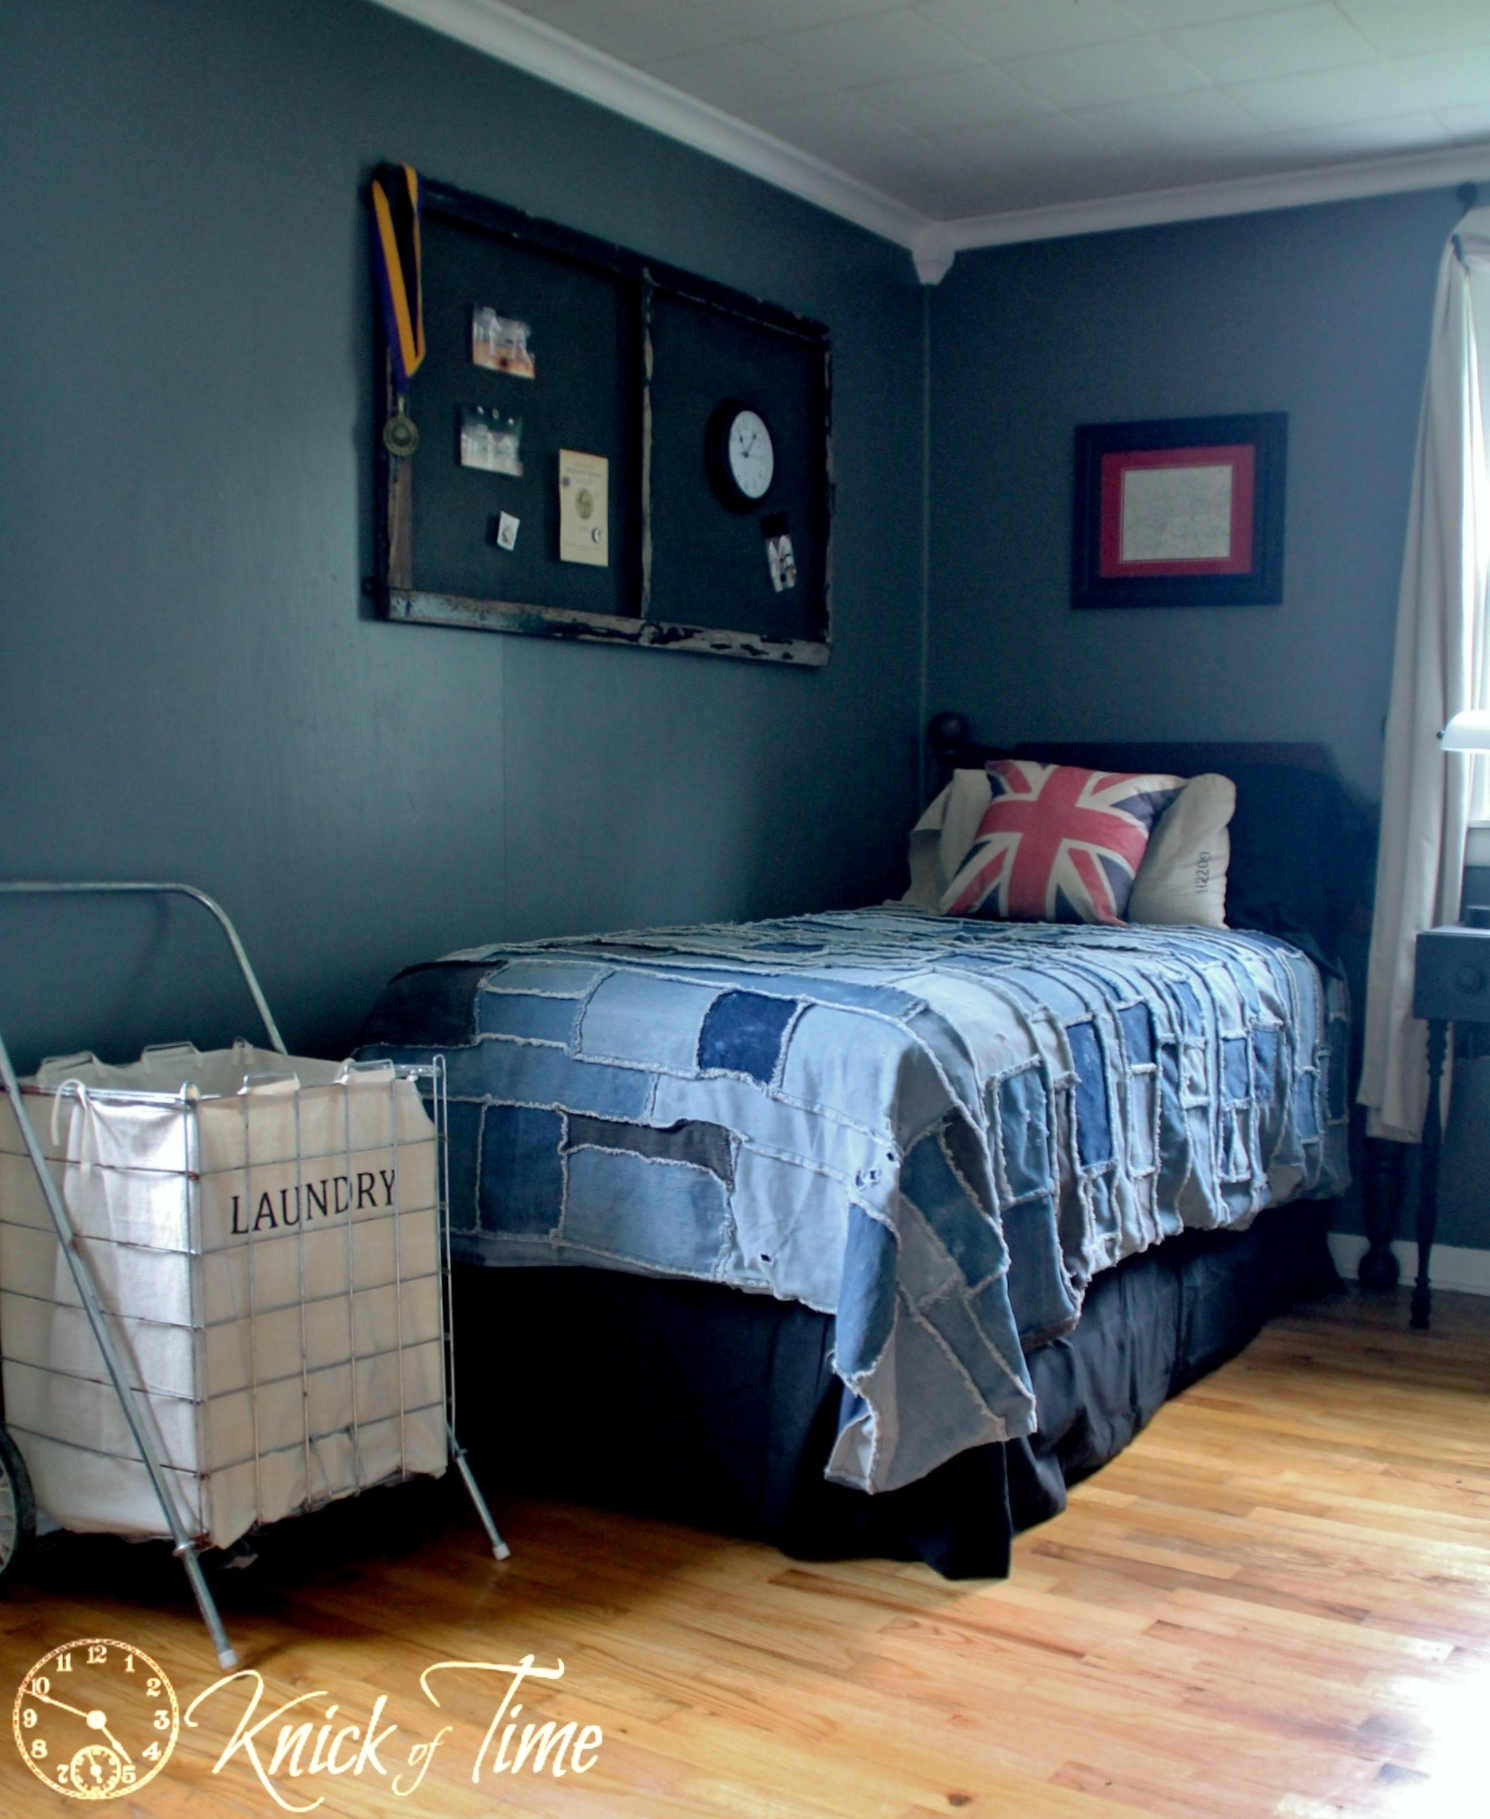 British inspired teen bedroom makeover knick of time for British bedroom ideas